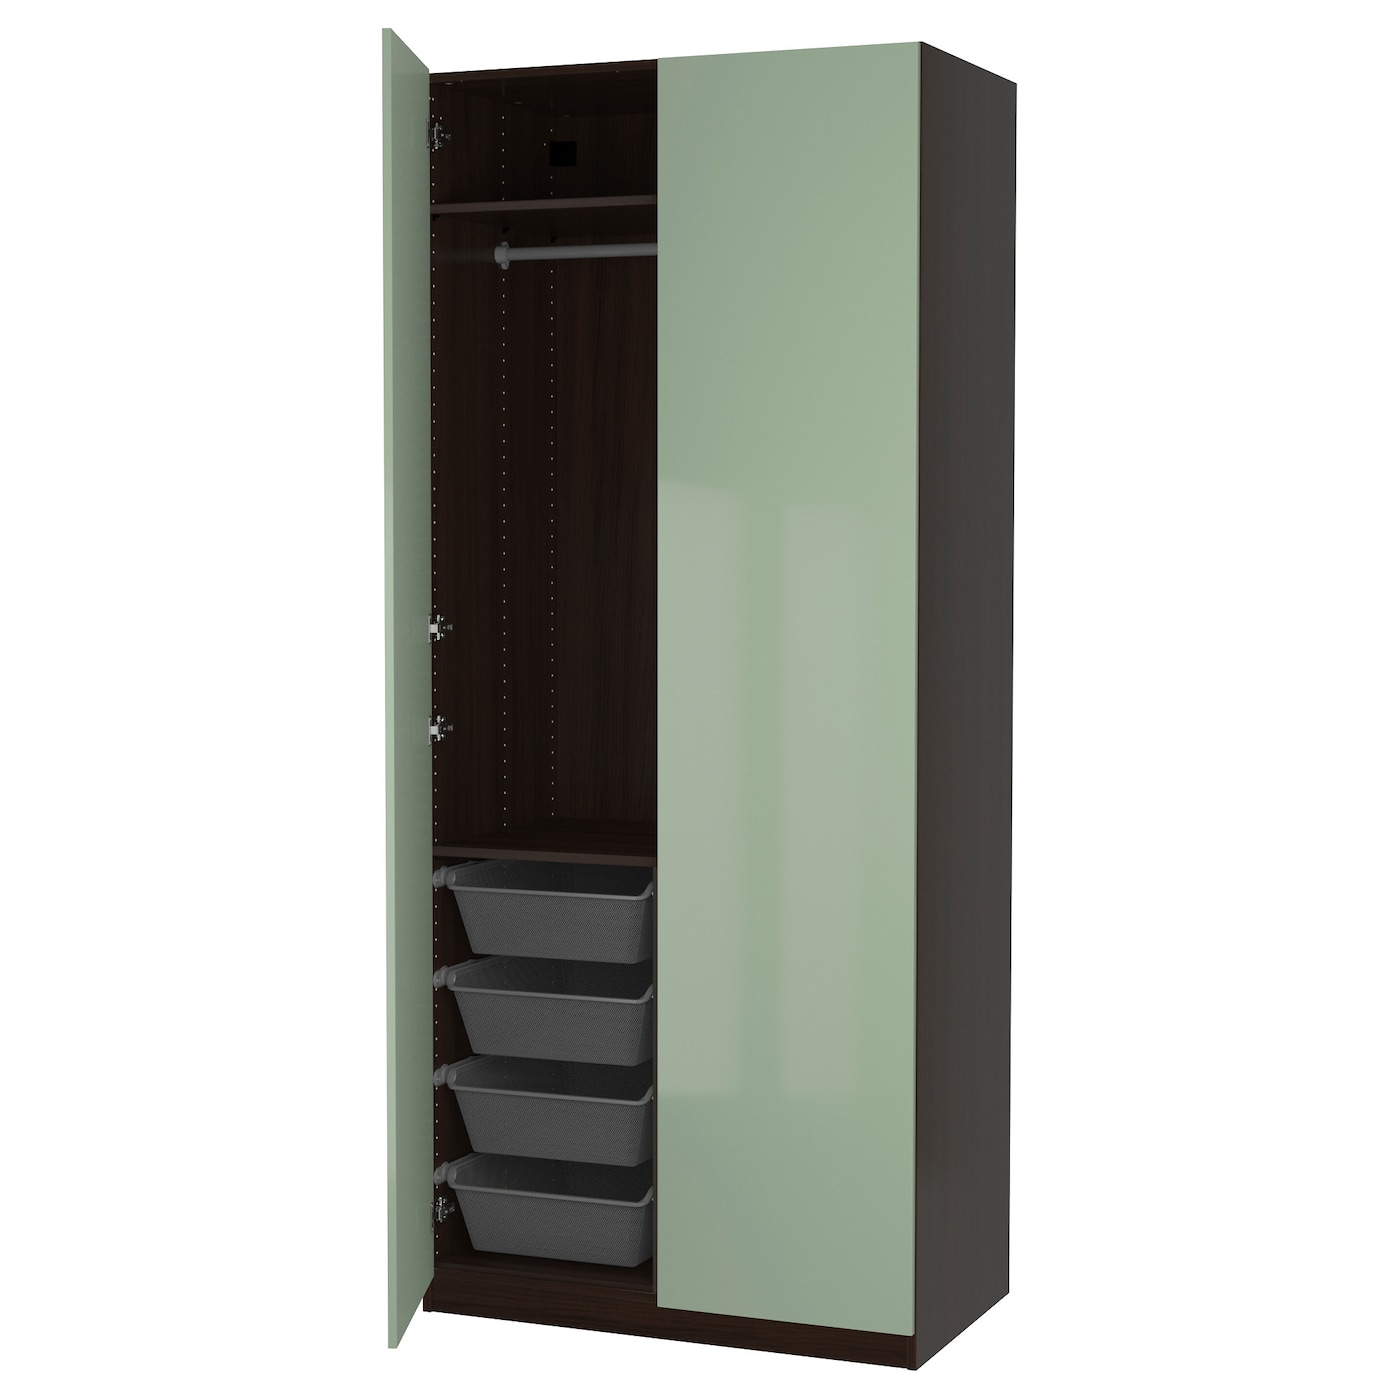 pax wardrobe black brown fardal high gloss light green. Black Bedroom Furniture Sets. Home Design Ideas